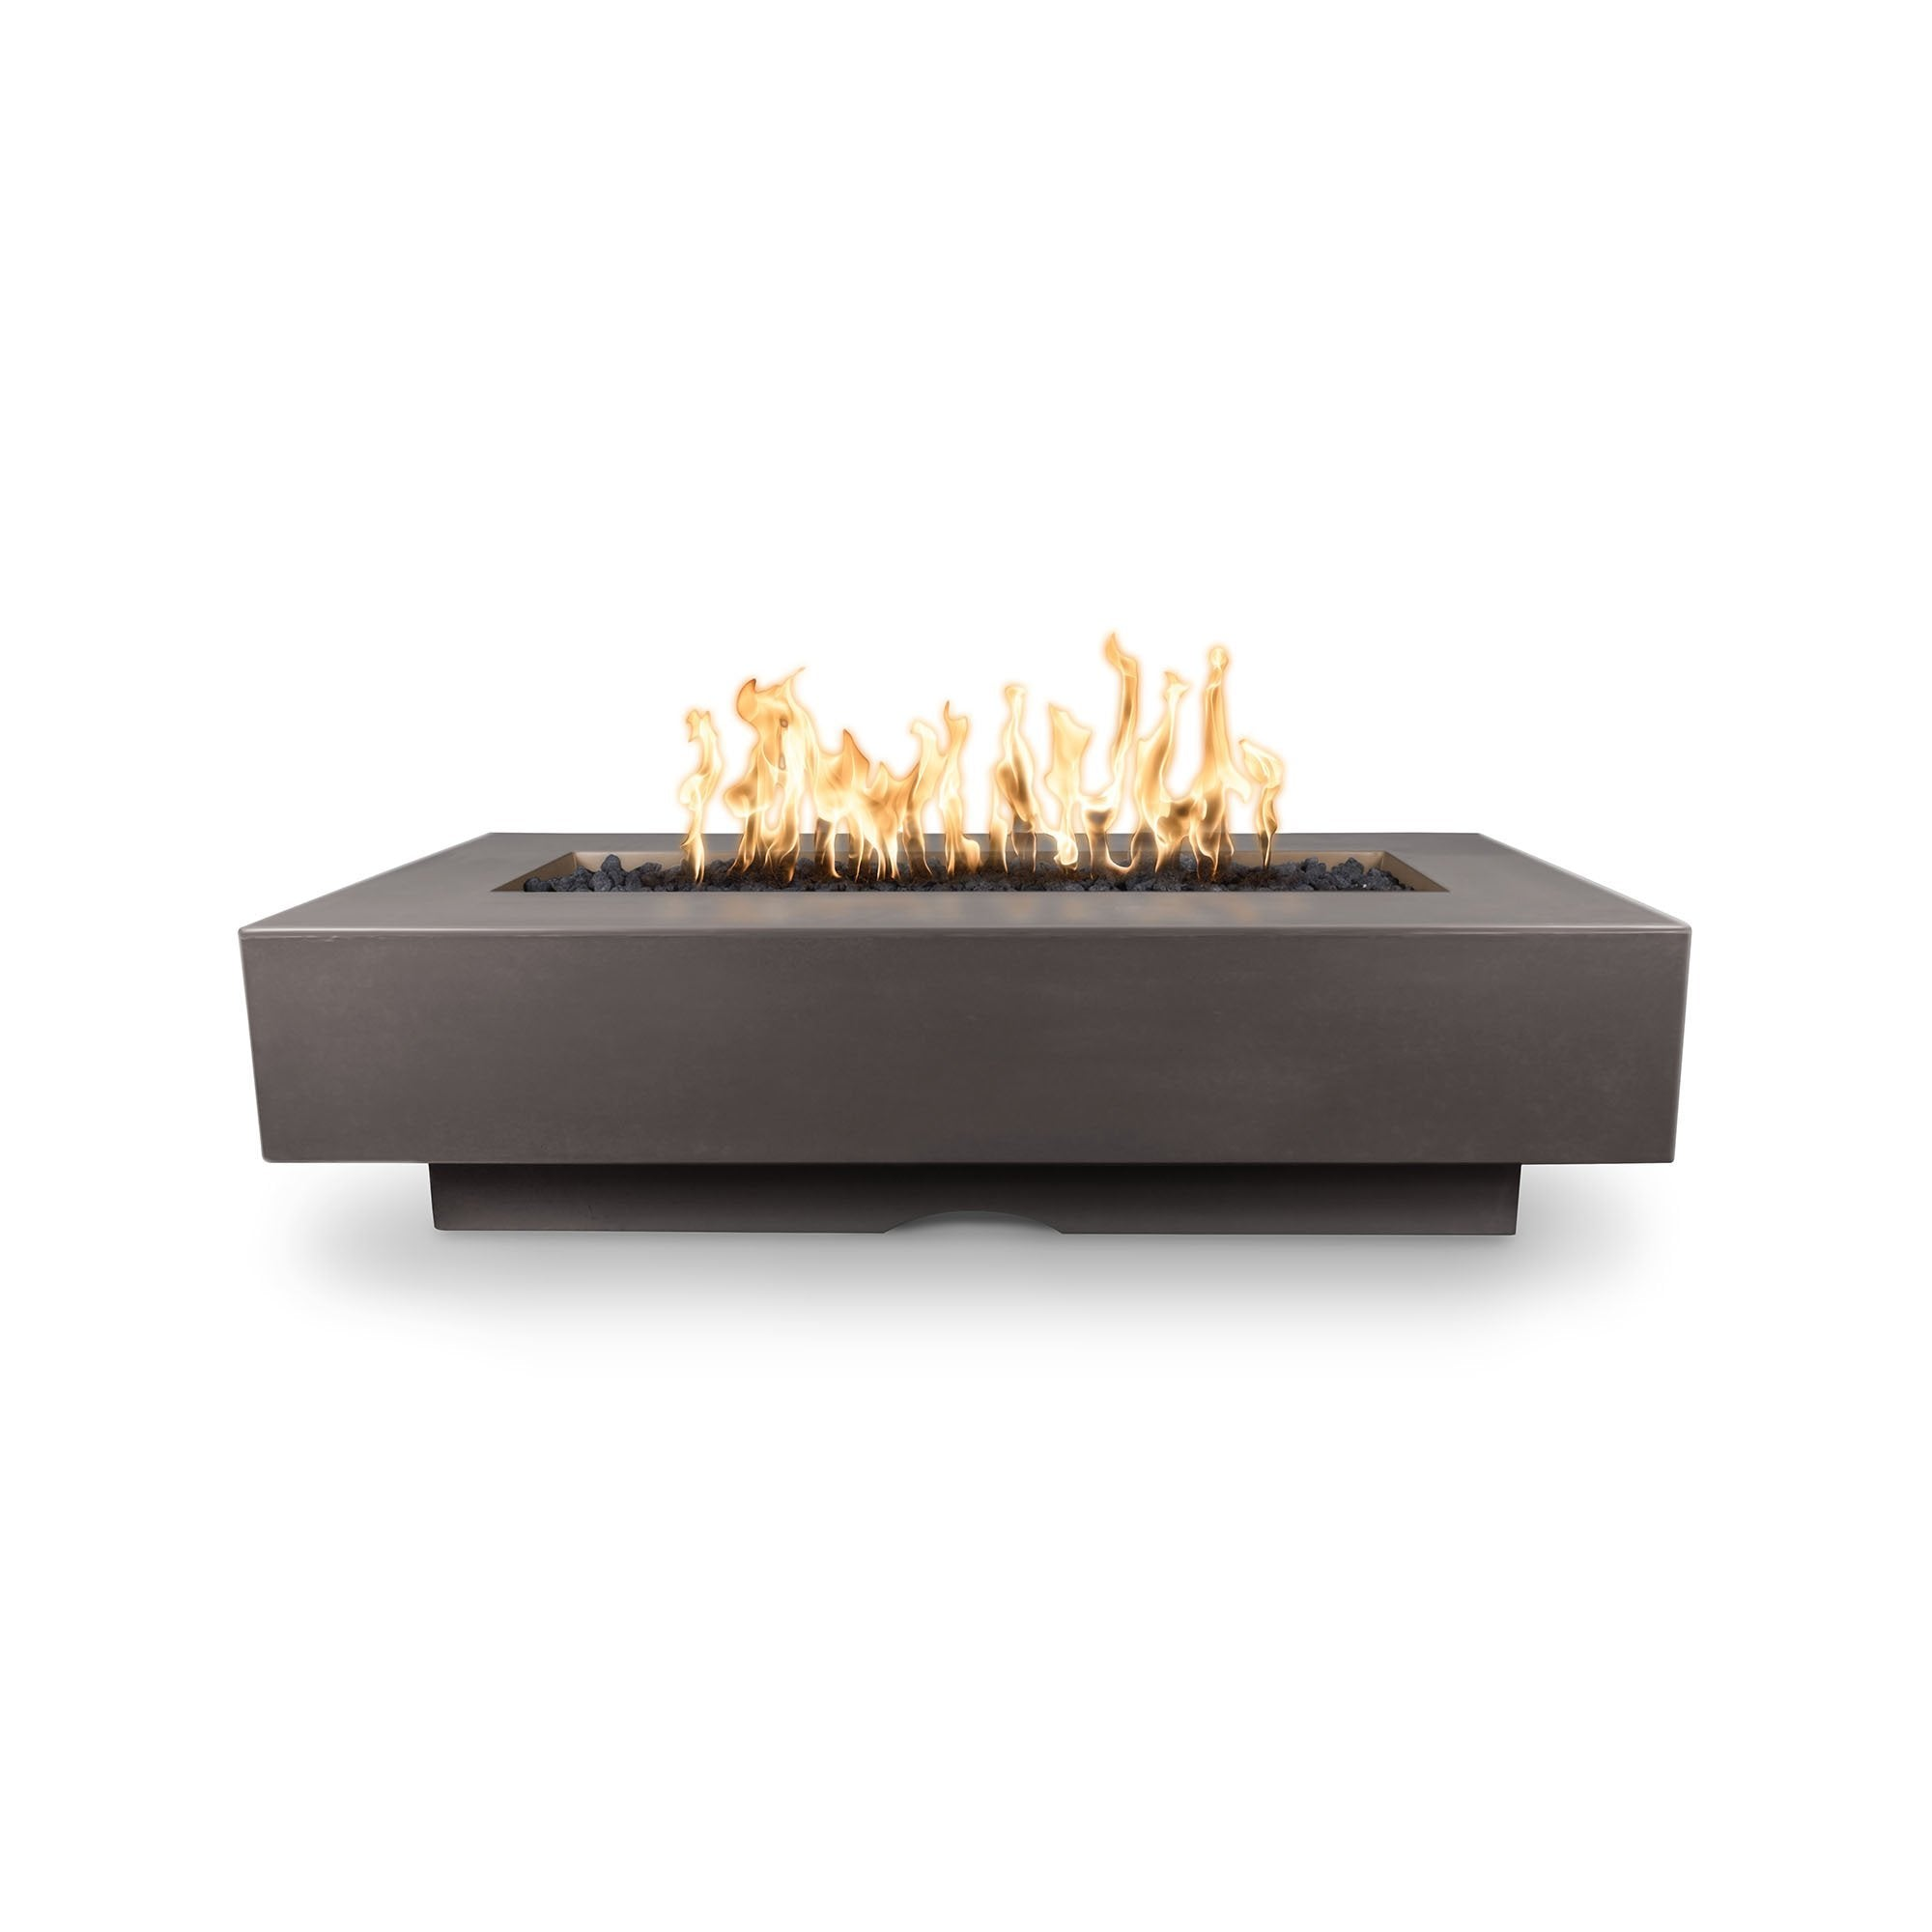 "TOP Fires by The Outdoor Plus Del Mar 60"" Fire Pit - Fire Pit Oasis"